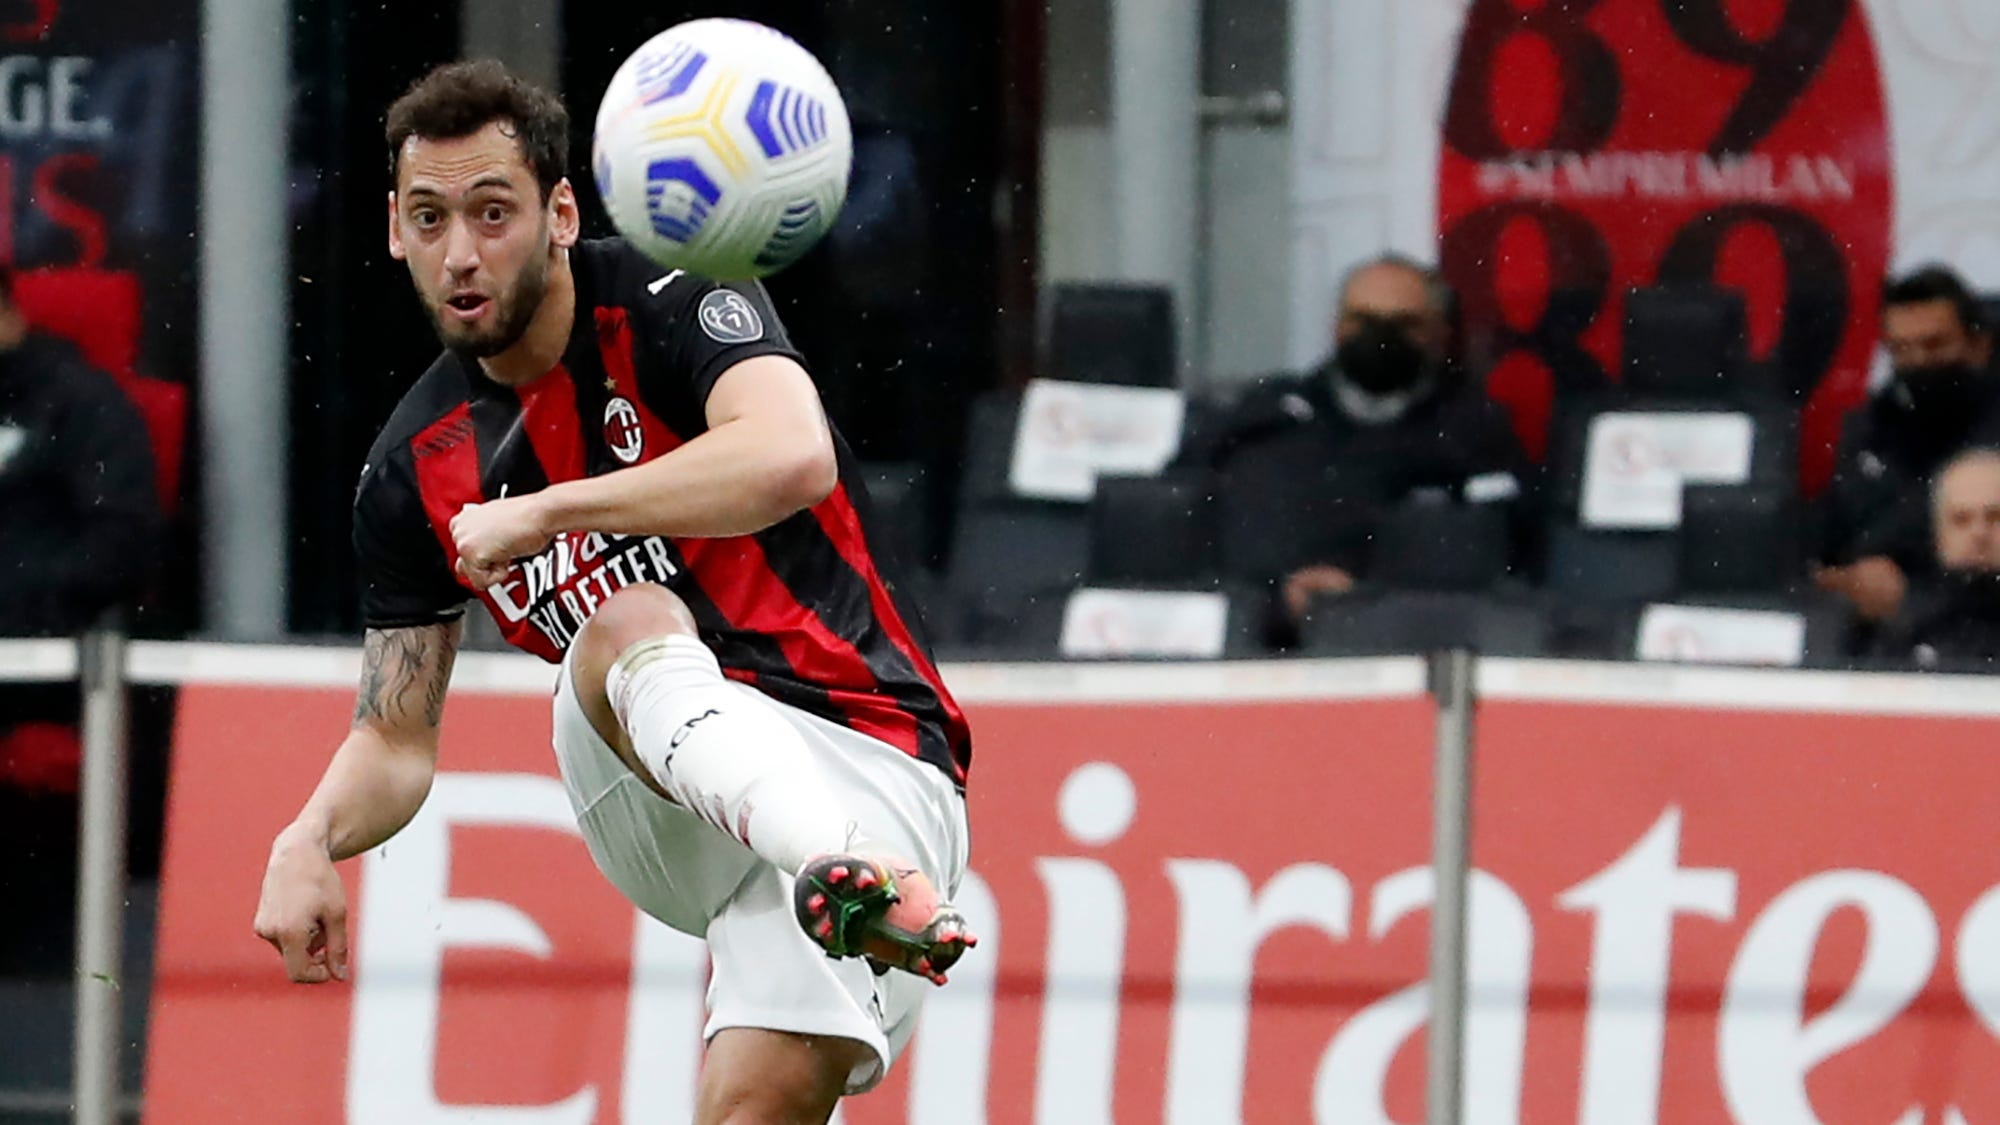 Milan loses 2-1 at home to Sassuolo in Serie A